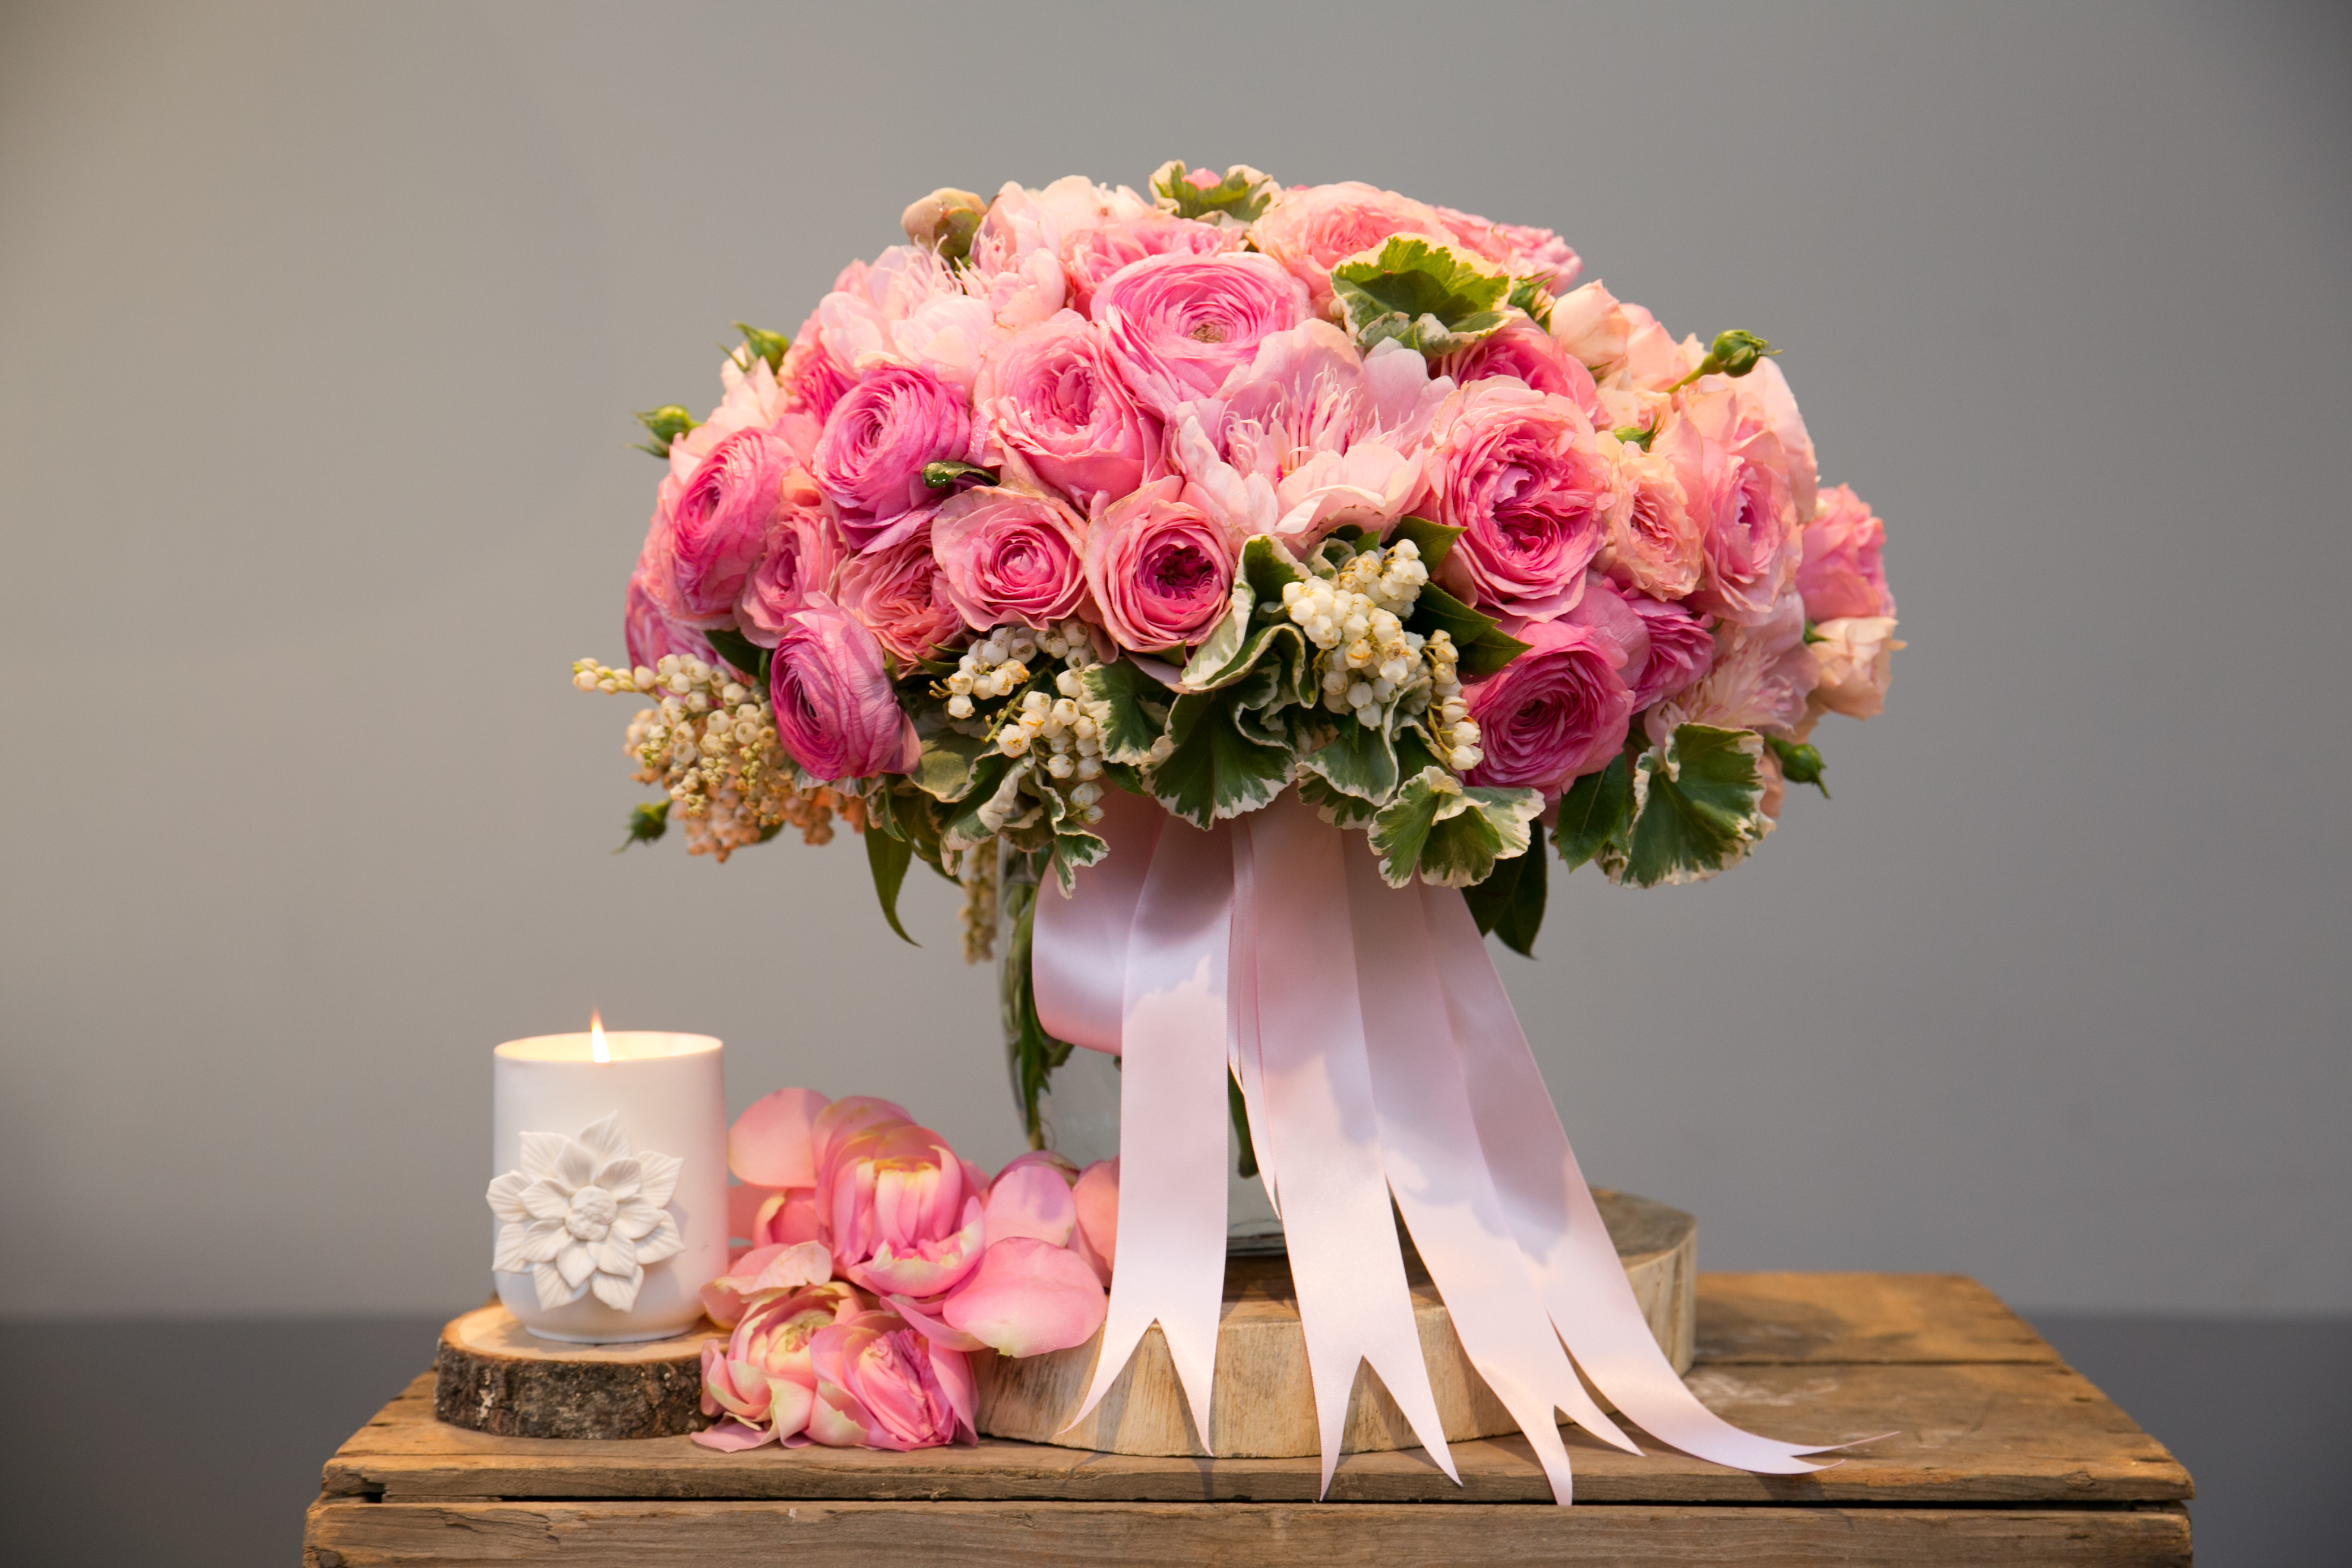 A master florist s guide to perfect home floral arrangements